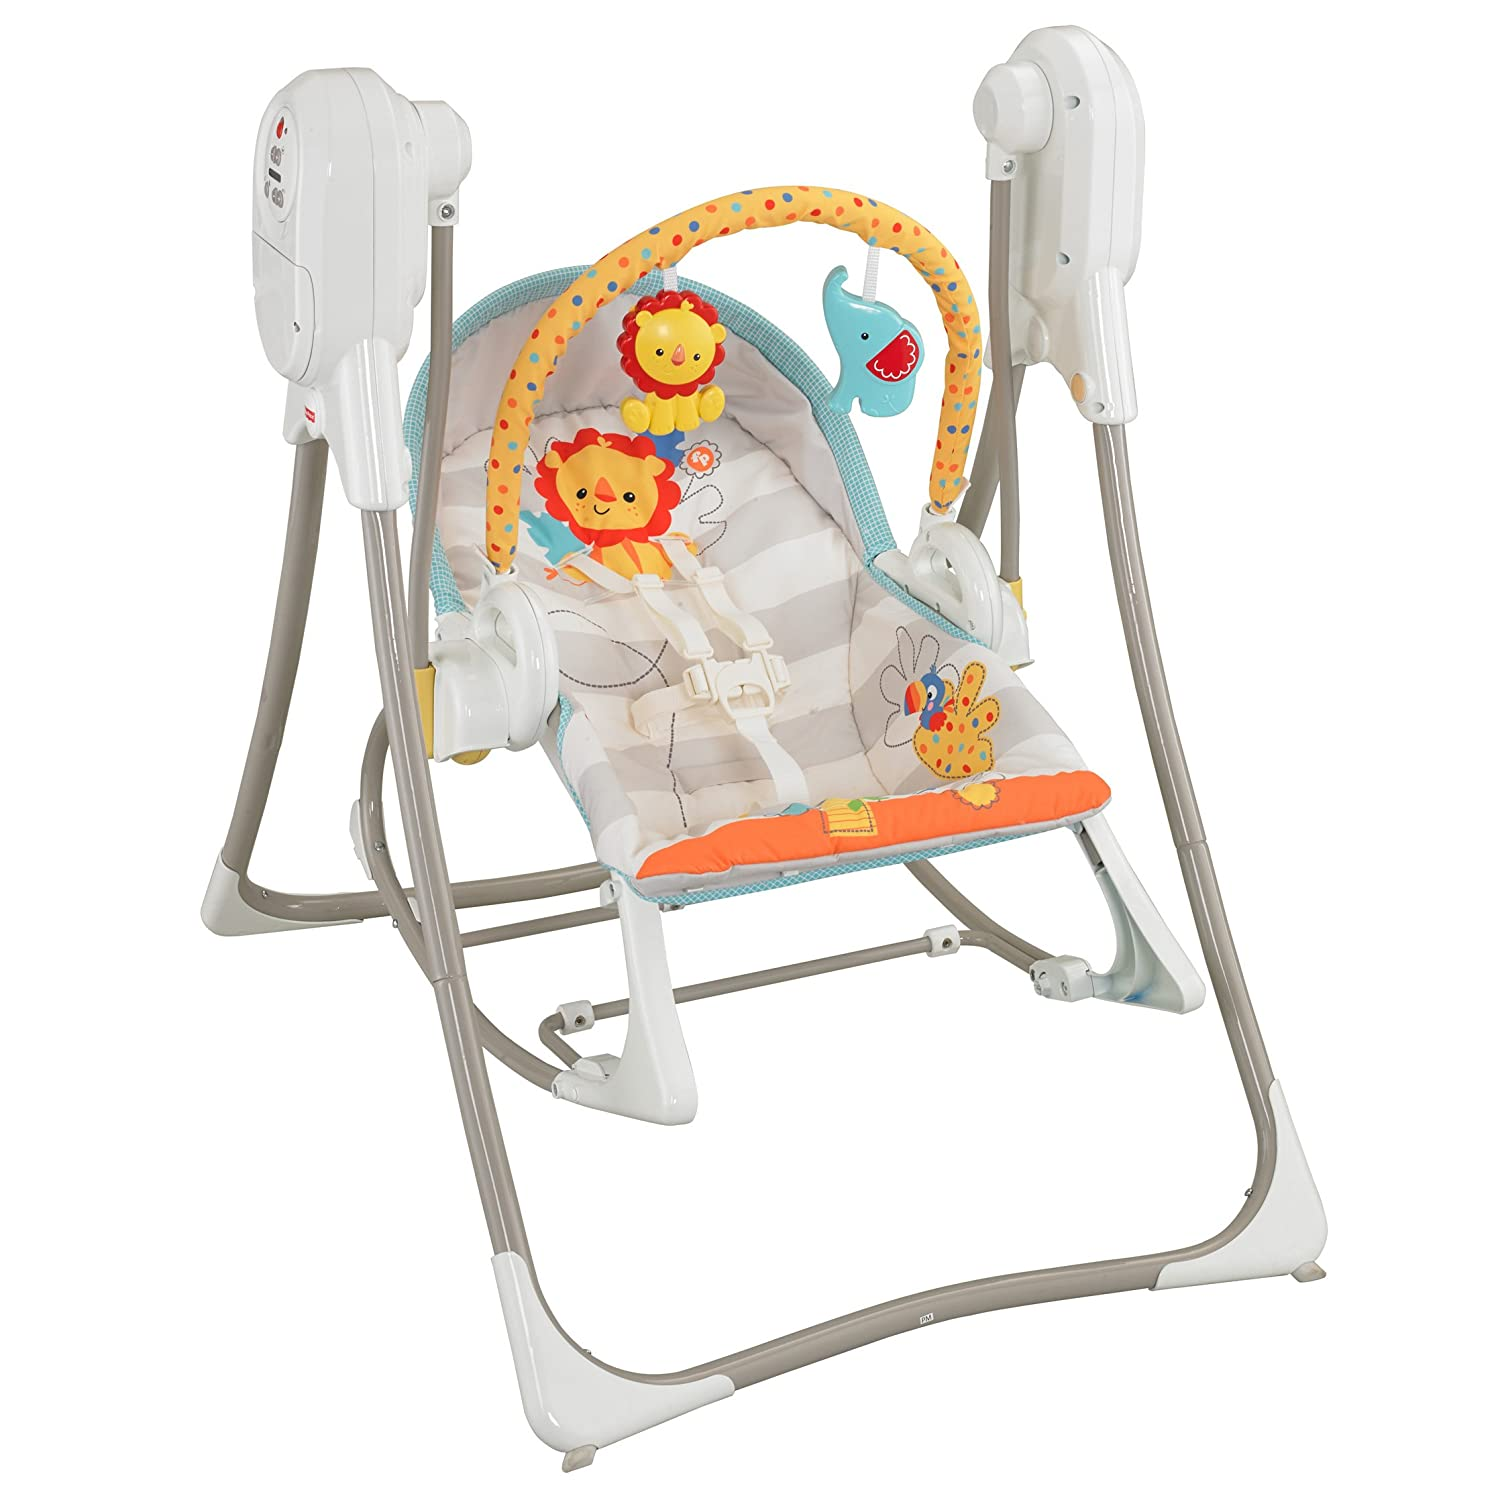 Fisher Price 3 in 1 Baby Infant Swing n Rocker Chair